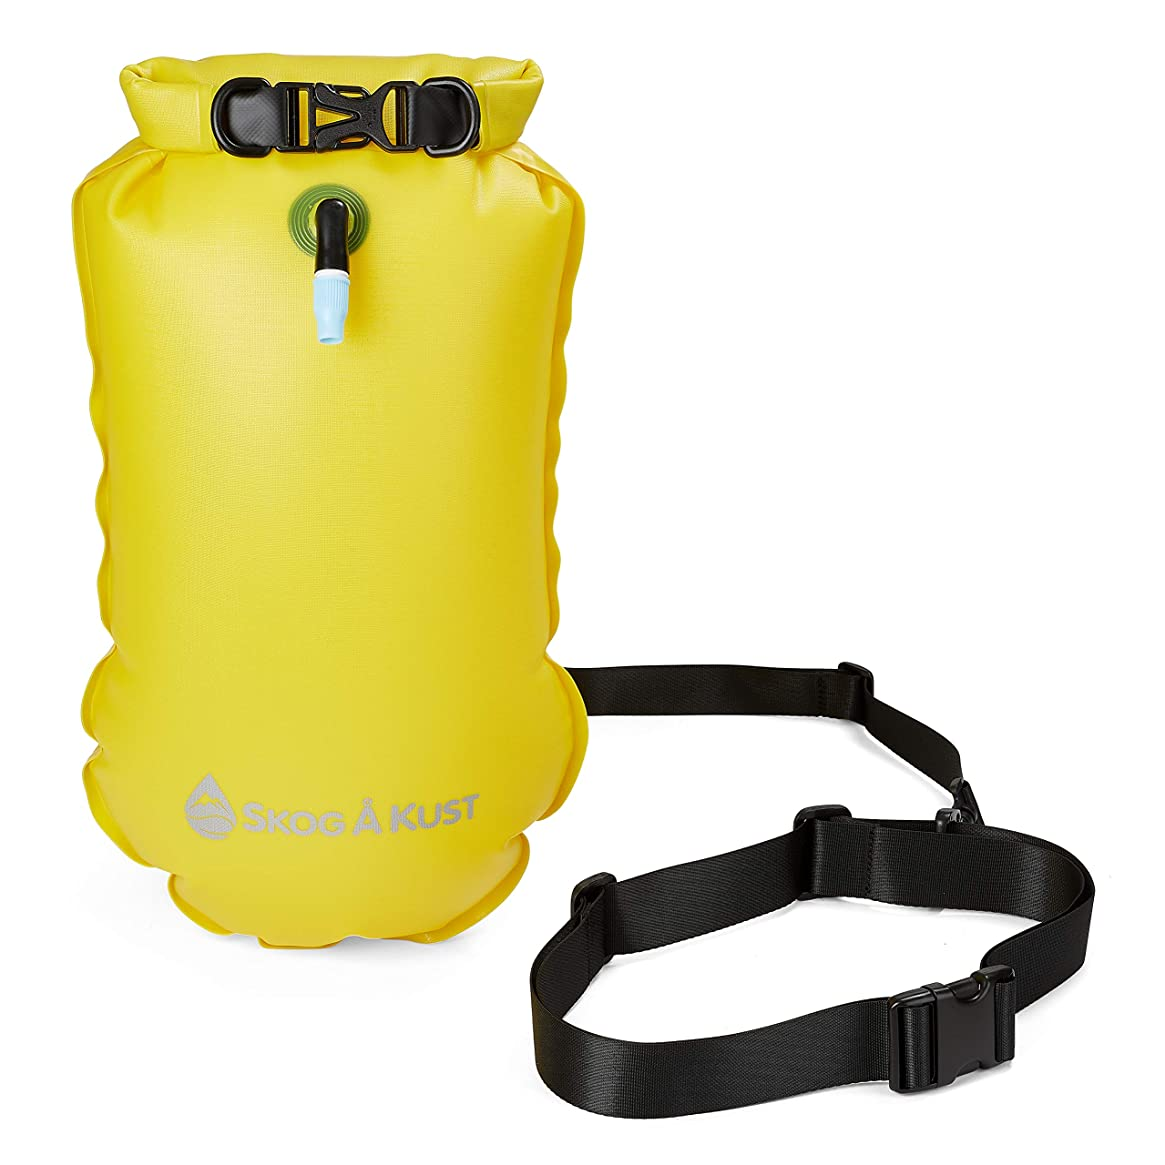 SwimSak | 2-in-1 Inflatable Floating Swim Buoy and Waterproof Dry Bag | Safety Device for Open Water or Long Distance Swimmers and Triathletes | 10L Yellow by Skog ? Kust